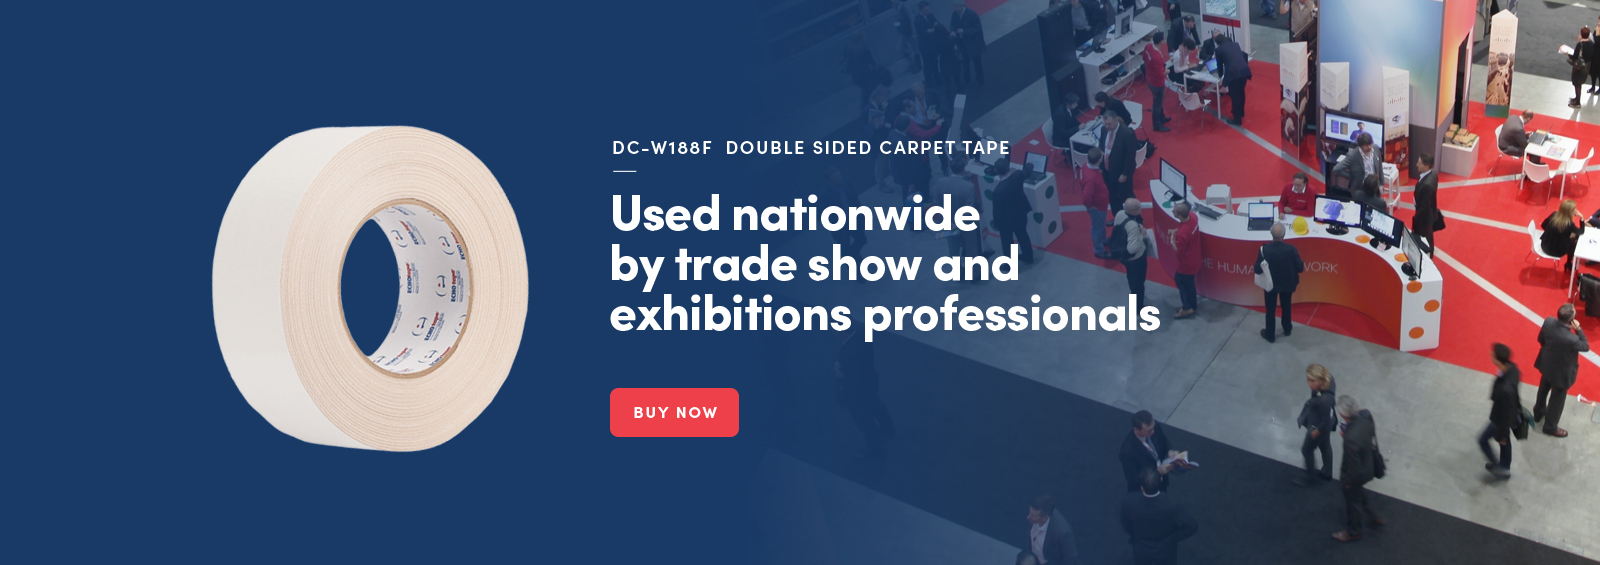 Used nationwide by trade show and exhibition professionals